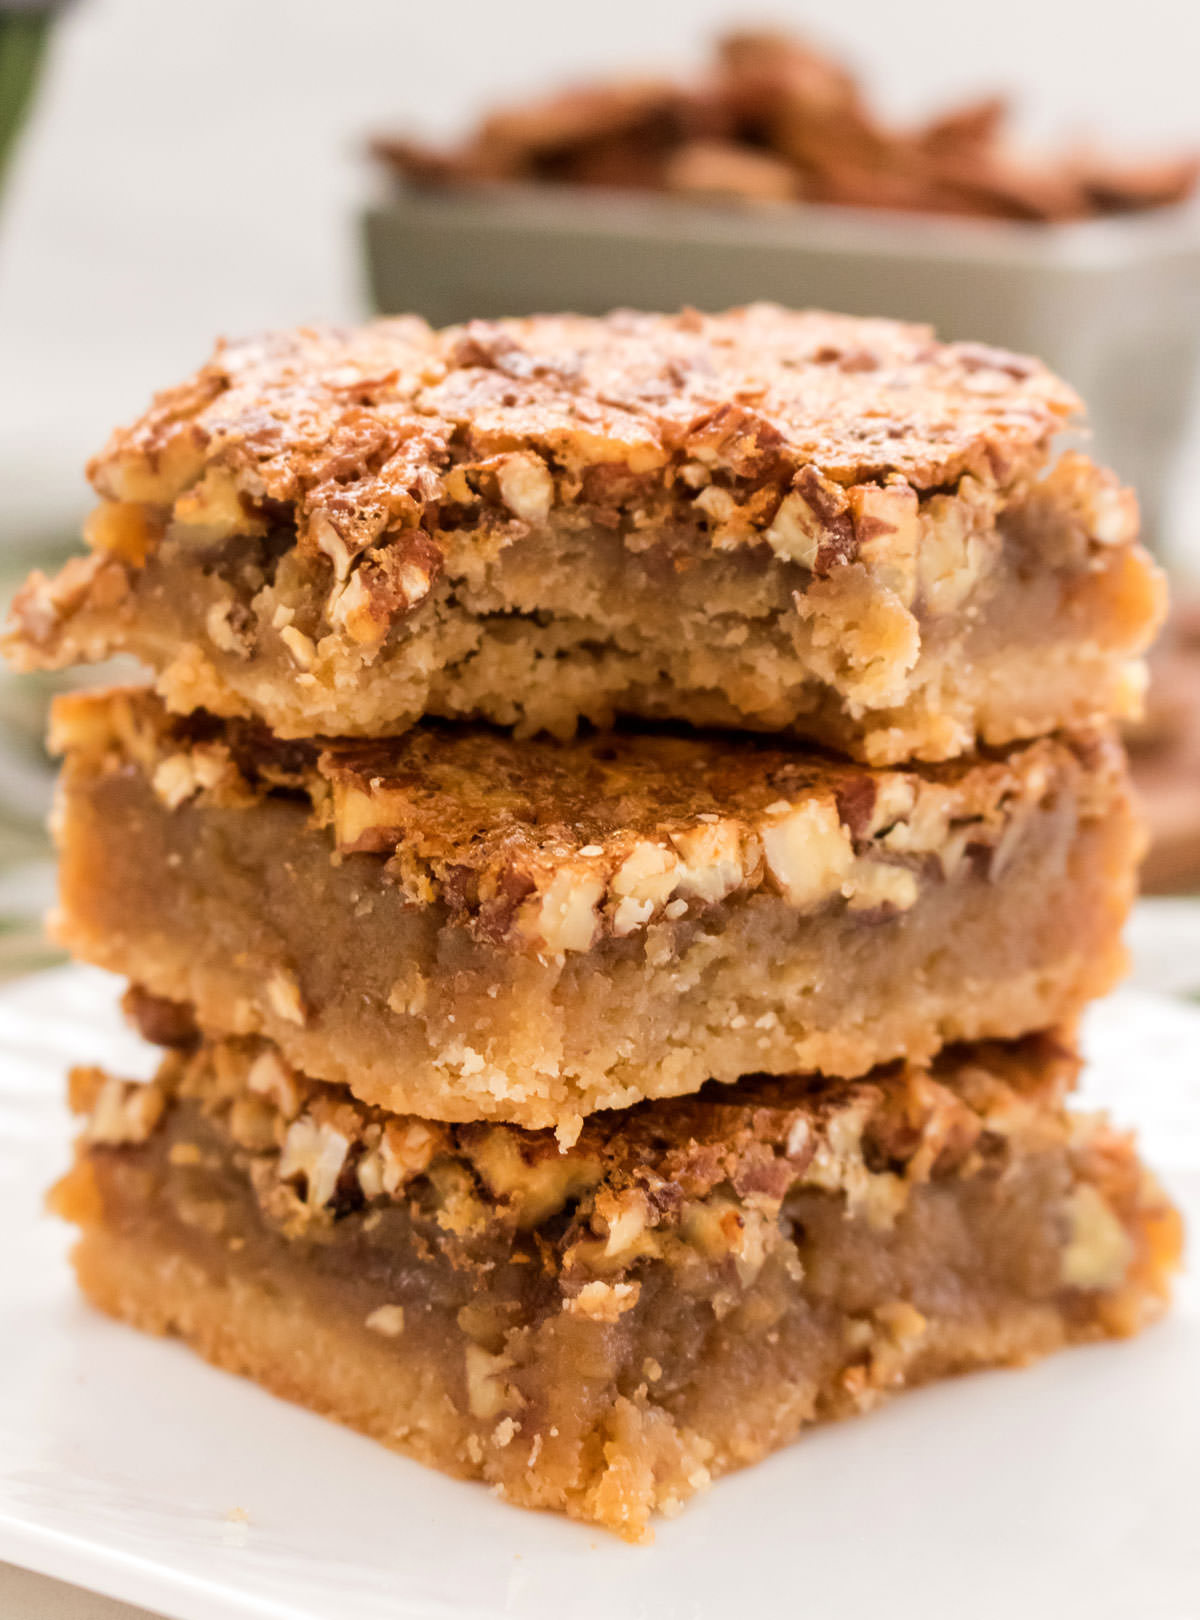 Closeup on a stack of three Pecan Pie Bars sitting on a white plate, the top one has a bite taken out of it.